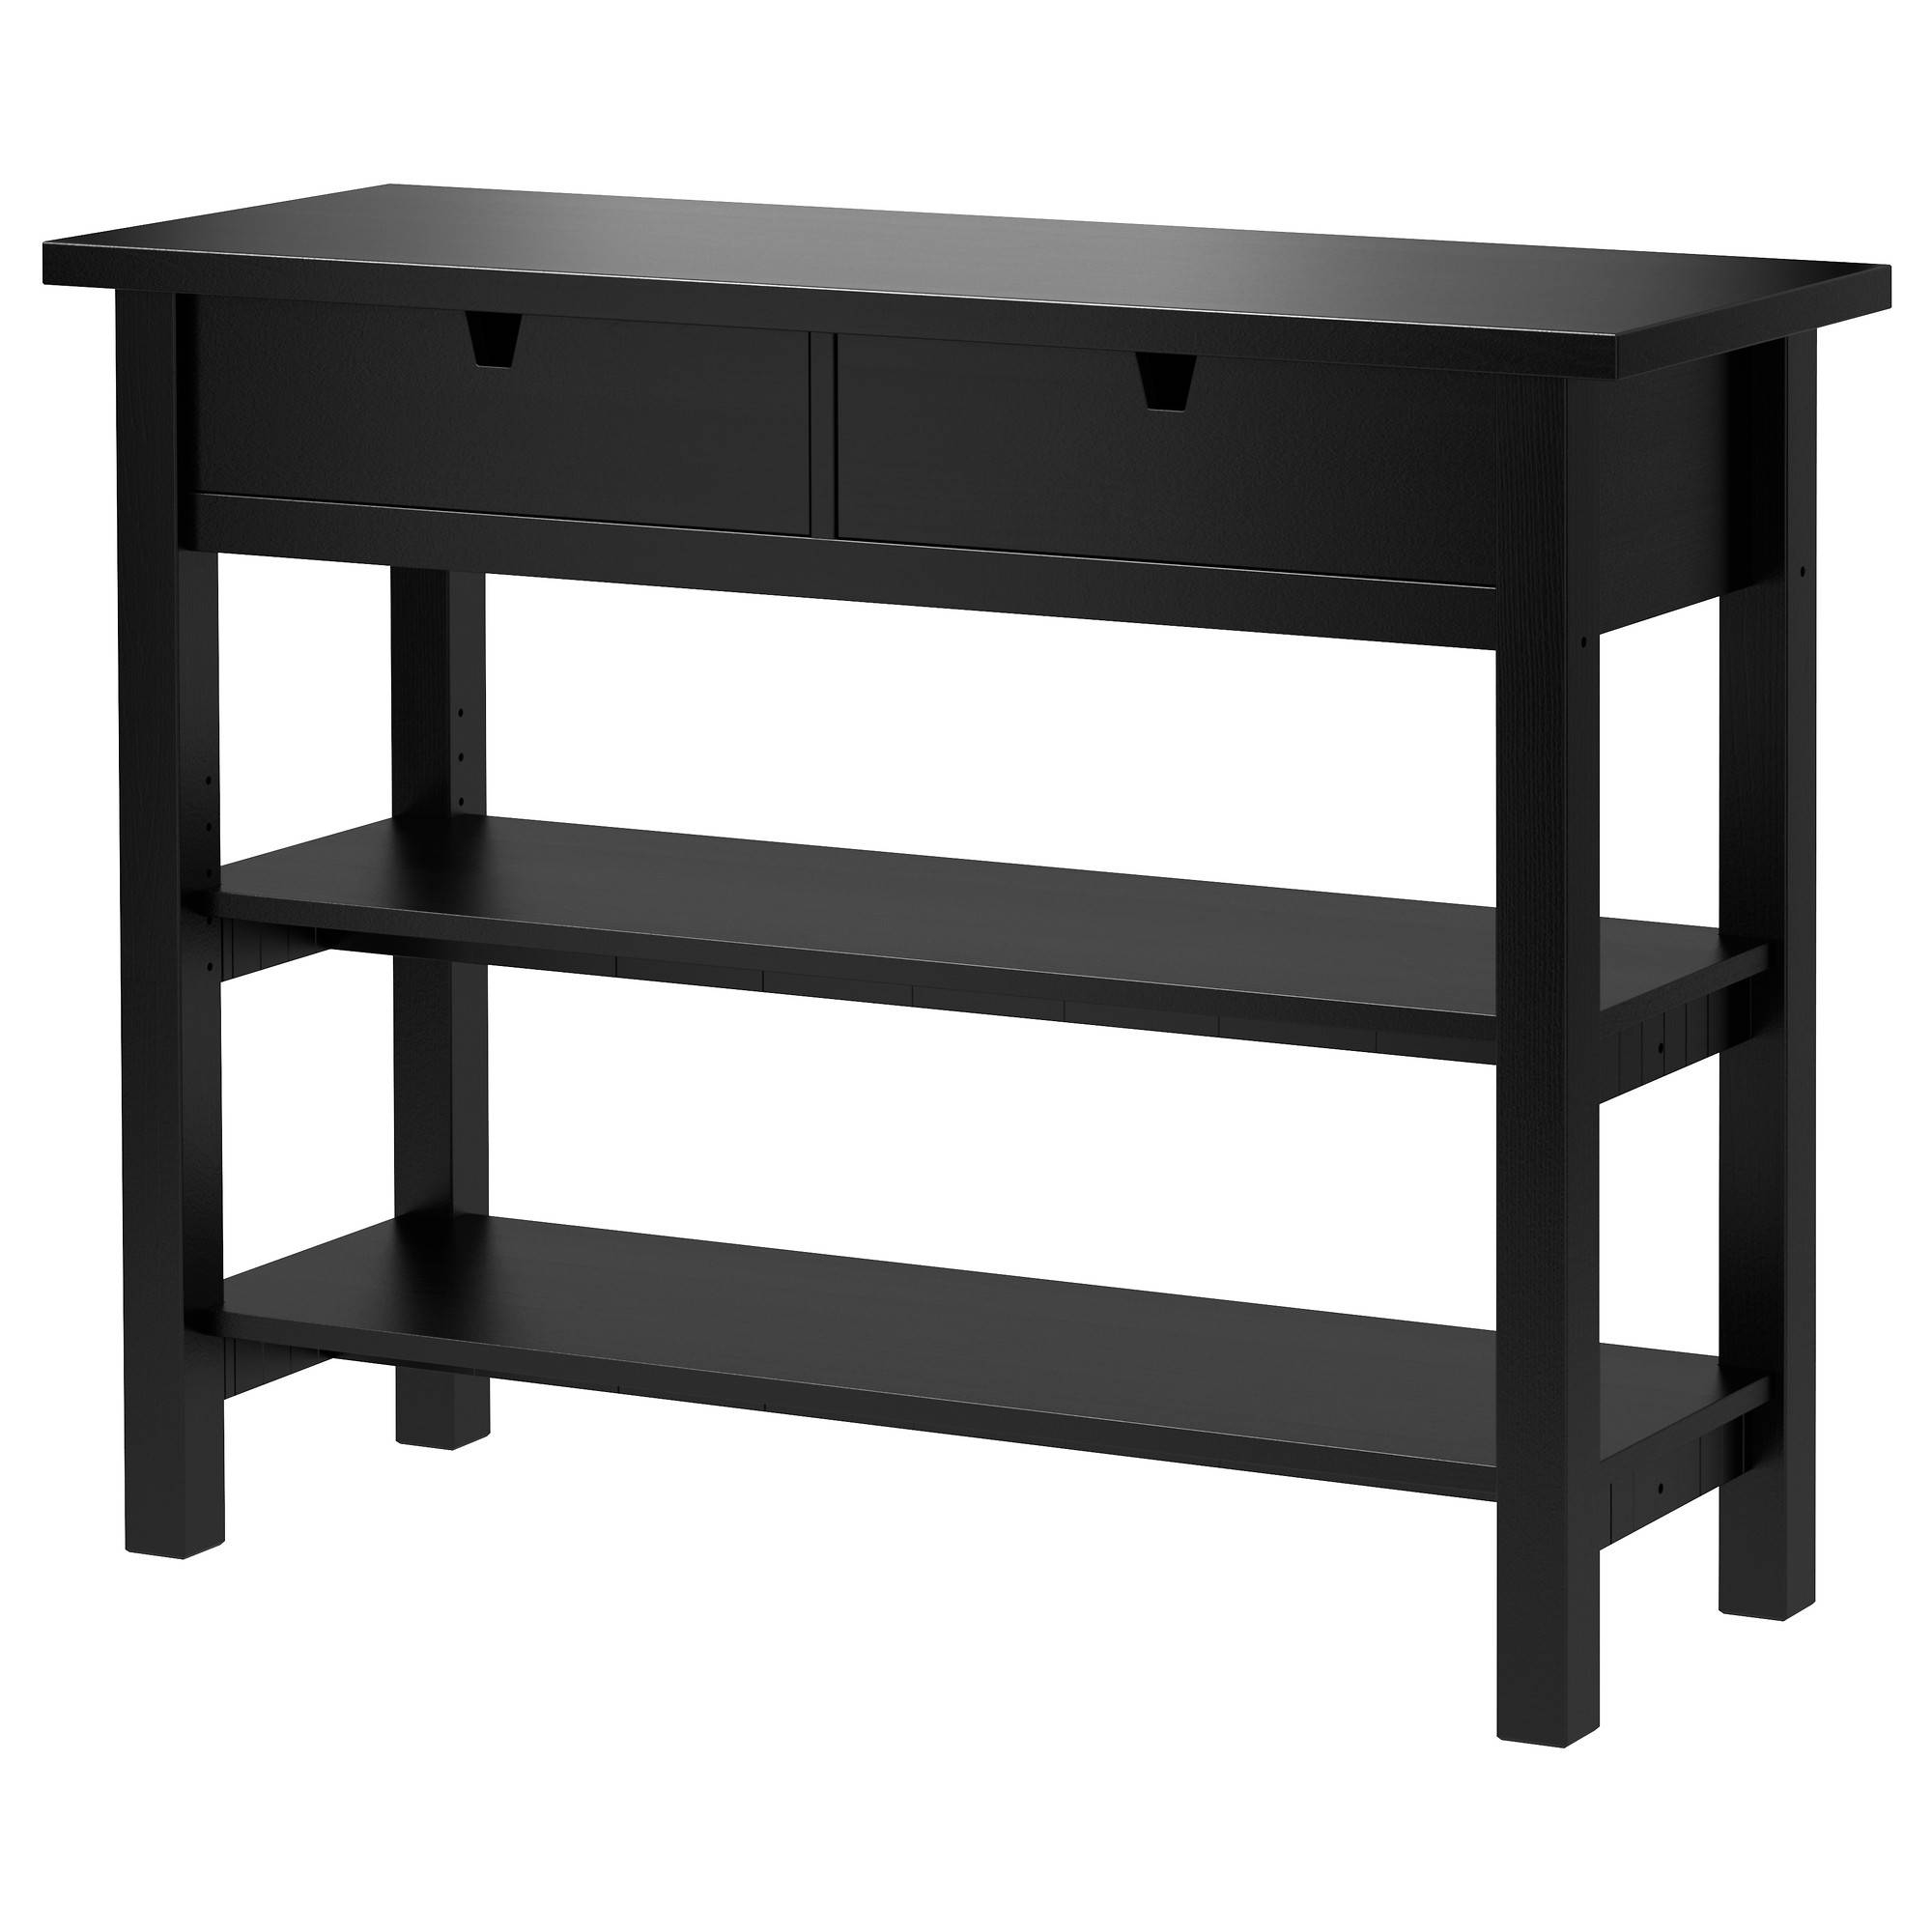 Norden Sideboard - Ikea inside Sideboard Tables (Image 11 of 15)